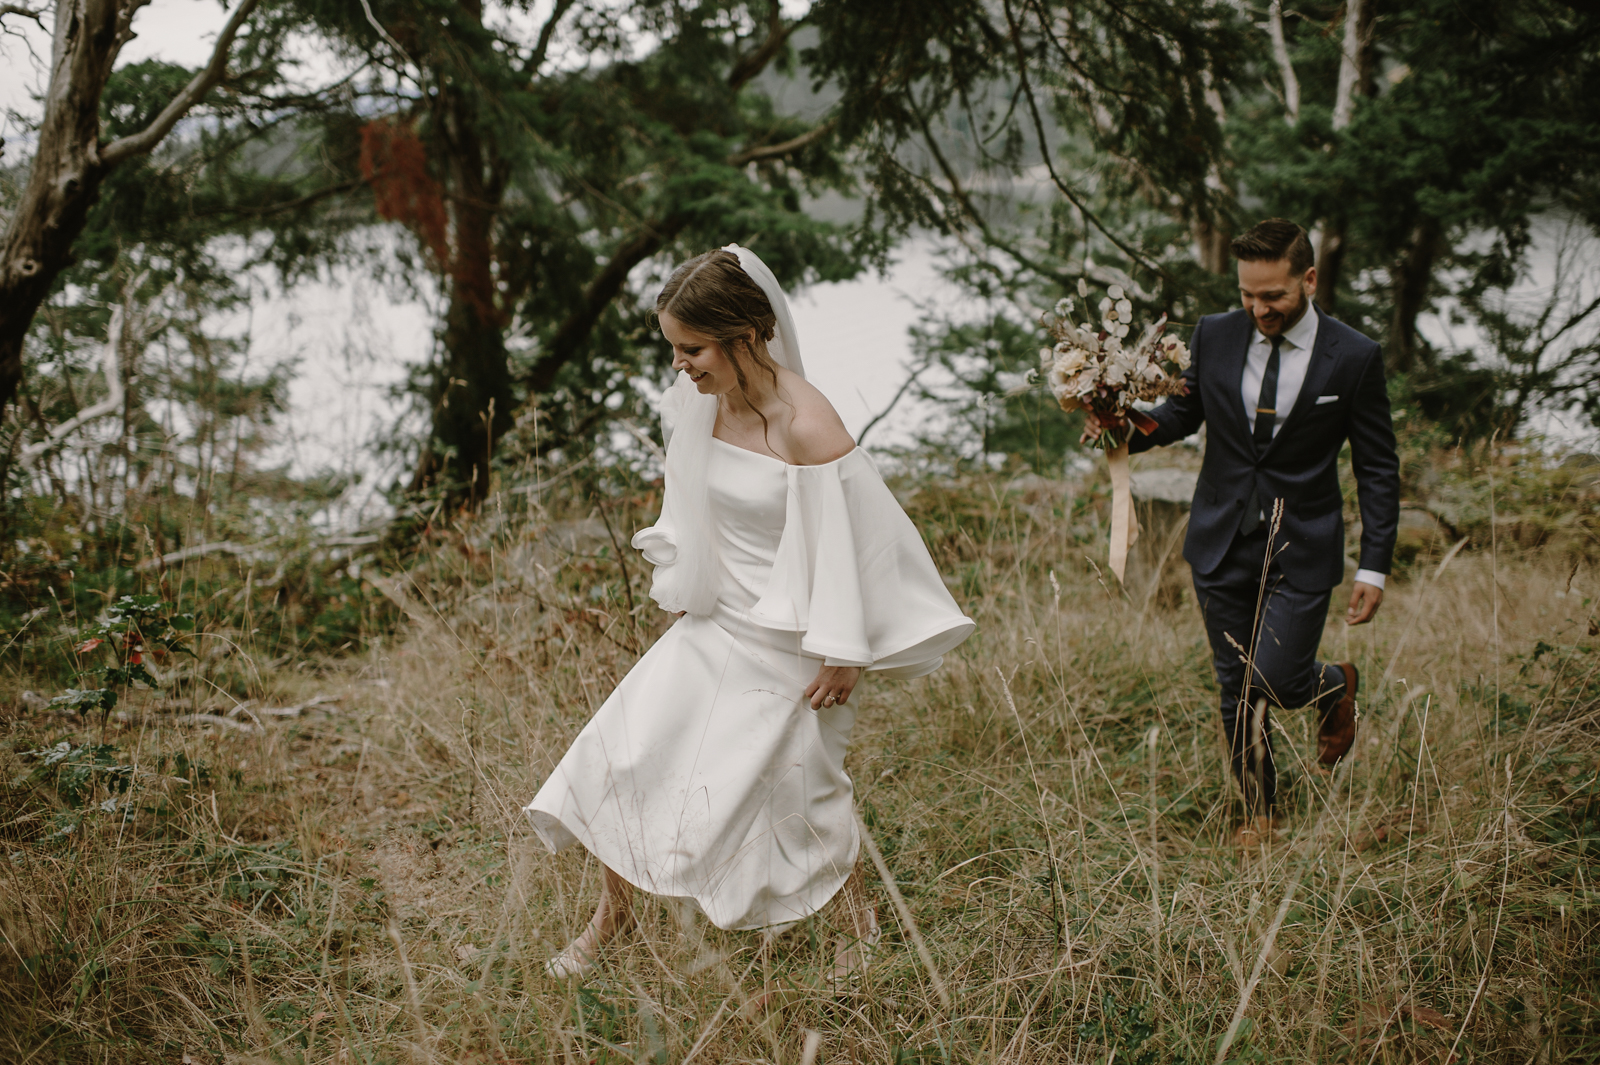 Kristen_Marie_Parker_Woodstock_Farm_Wedding027.JPG